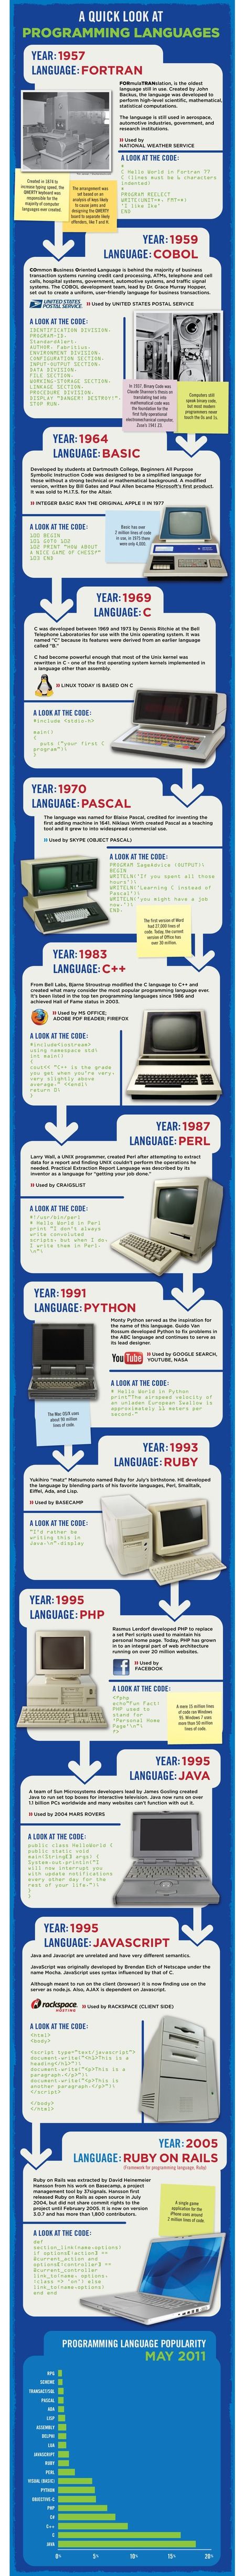 Infographic about Programming | IT, Electronics, Programming | Scoop.it